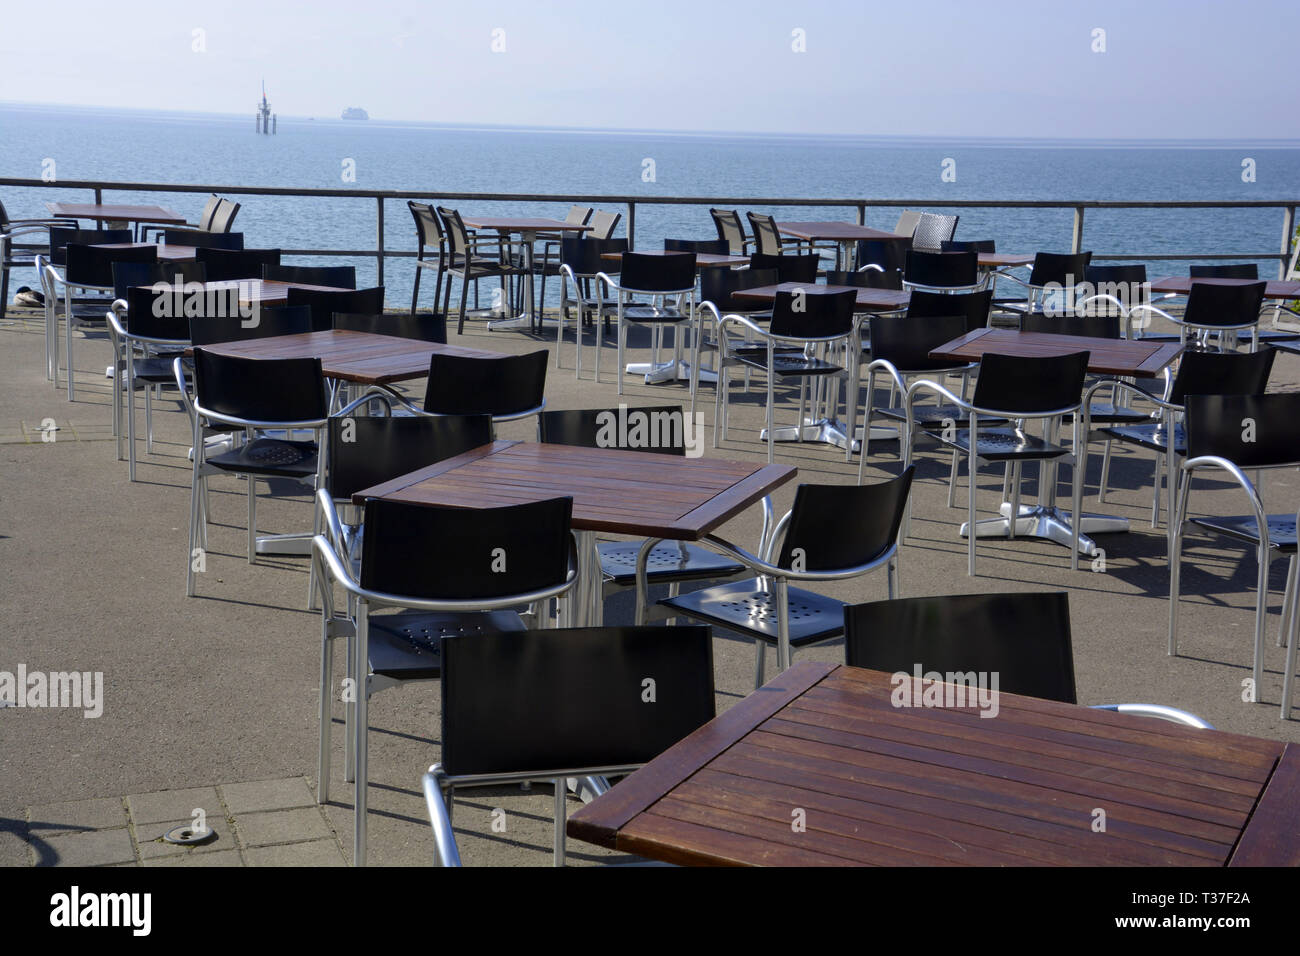 tables and chairs without persons on the lakeside promenade against lake constance and ferry and bouys at the horizon, empty restaurant in early sprin Stock Photo